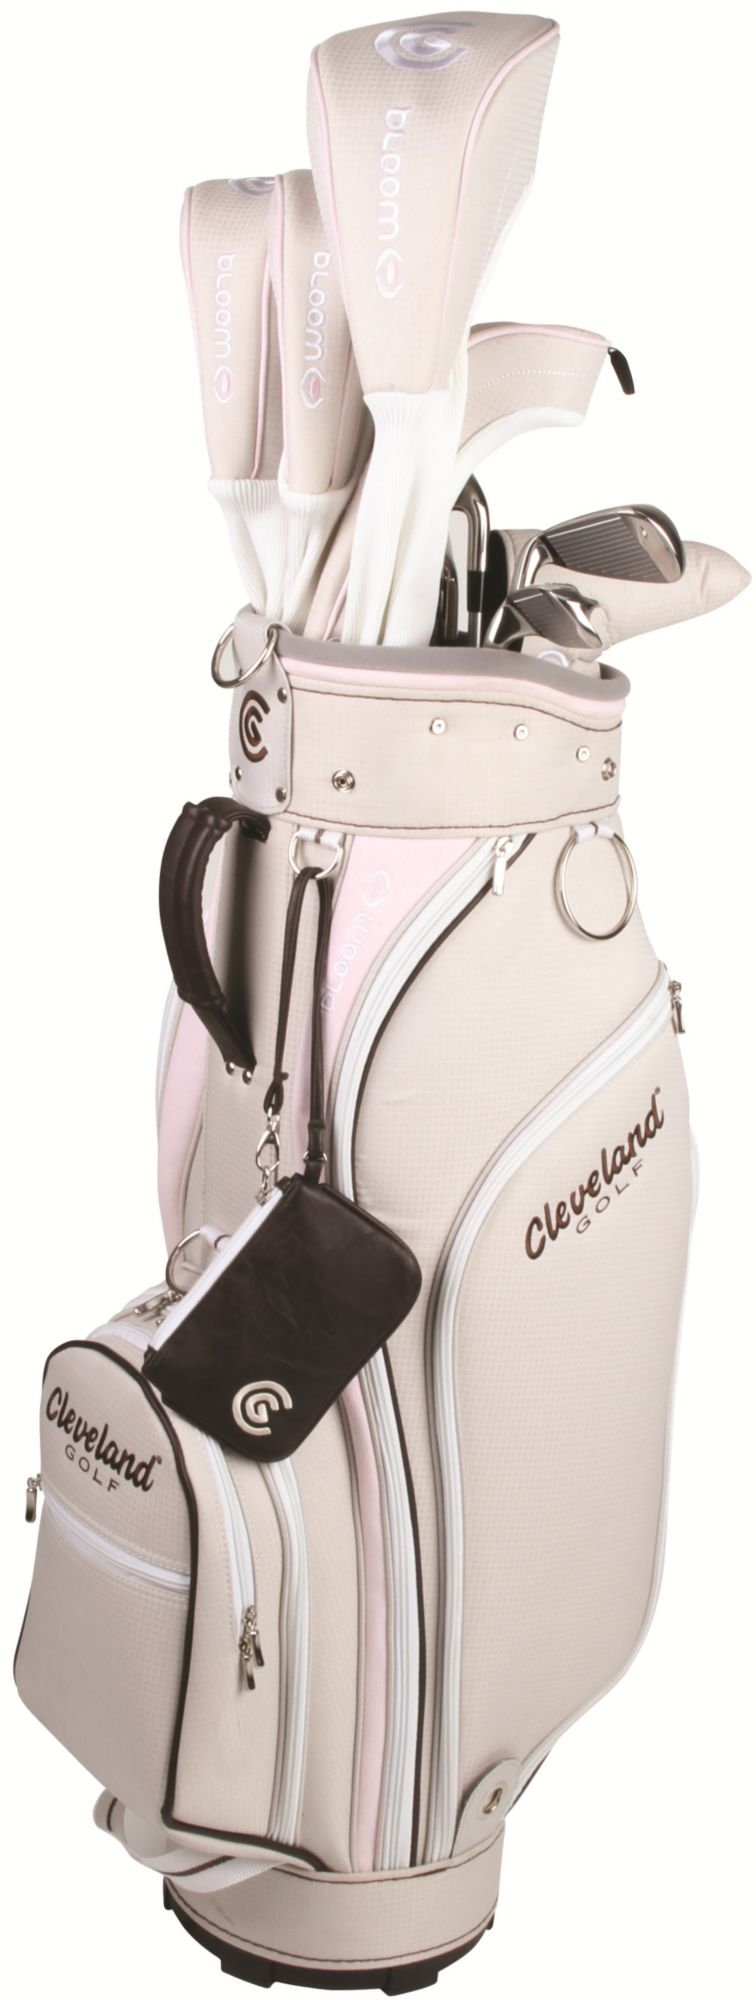 Cleveland Women's Bloom 14 Piece Complete Set   Pink